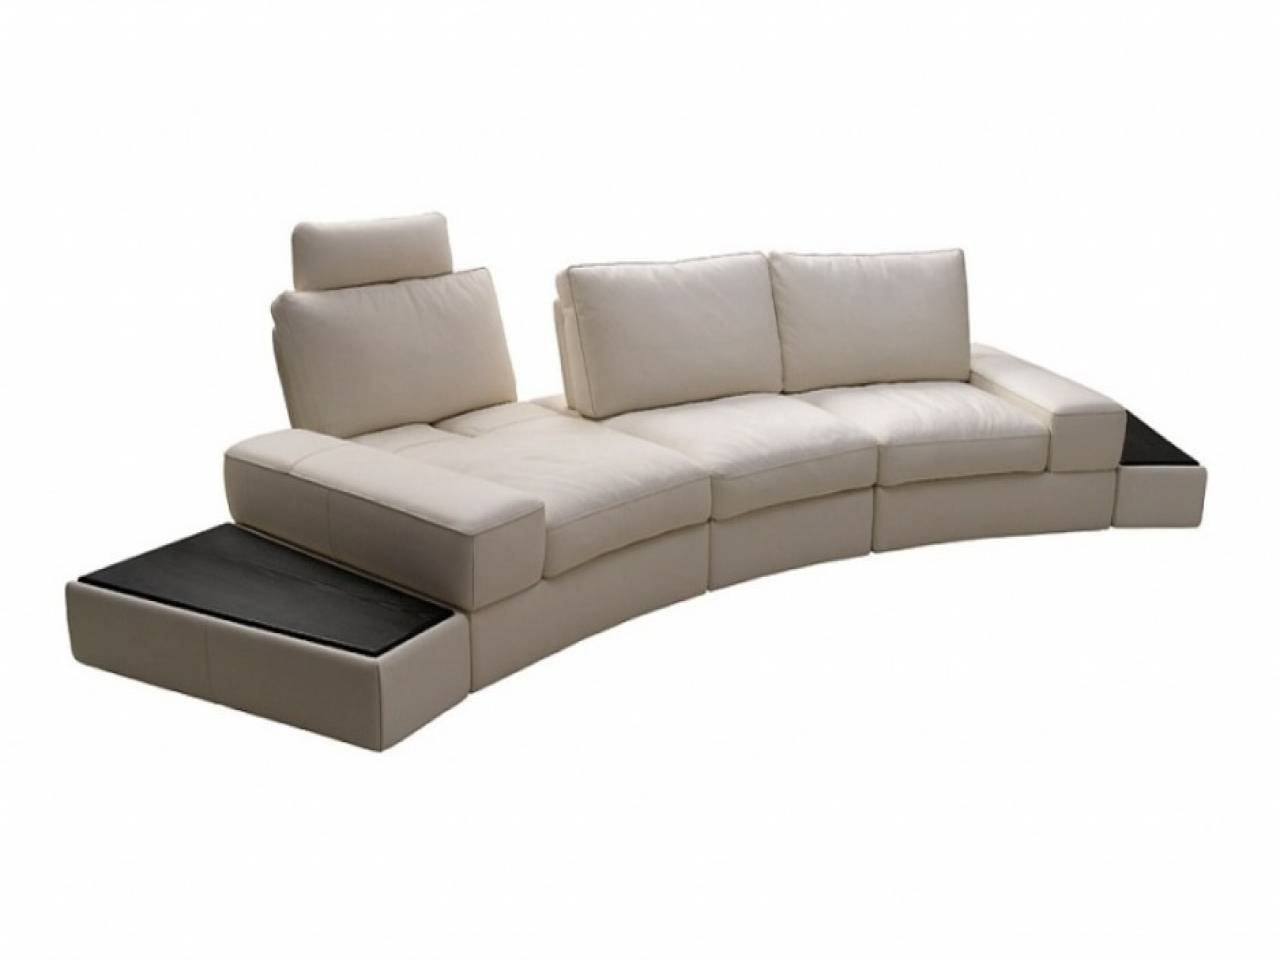 Small Corner Sectional Couch, Sofas For Small Rooms Small Sofas Intended For Small Modern Sofas (View 11 of 15)